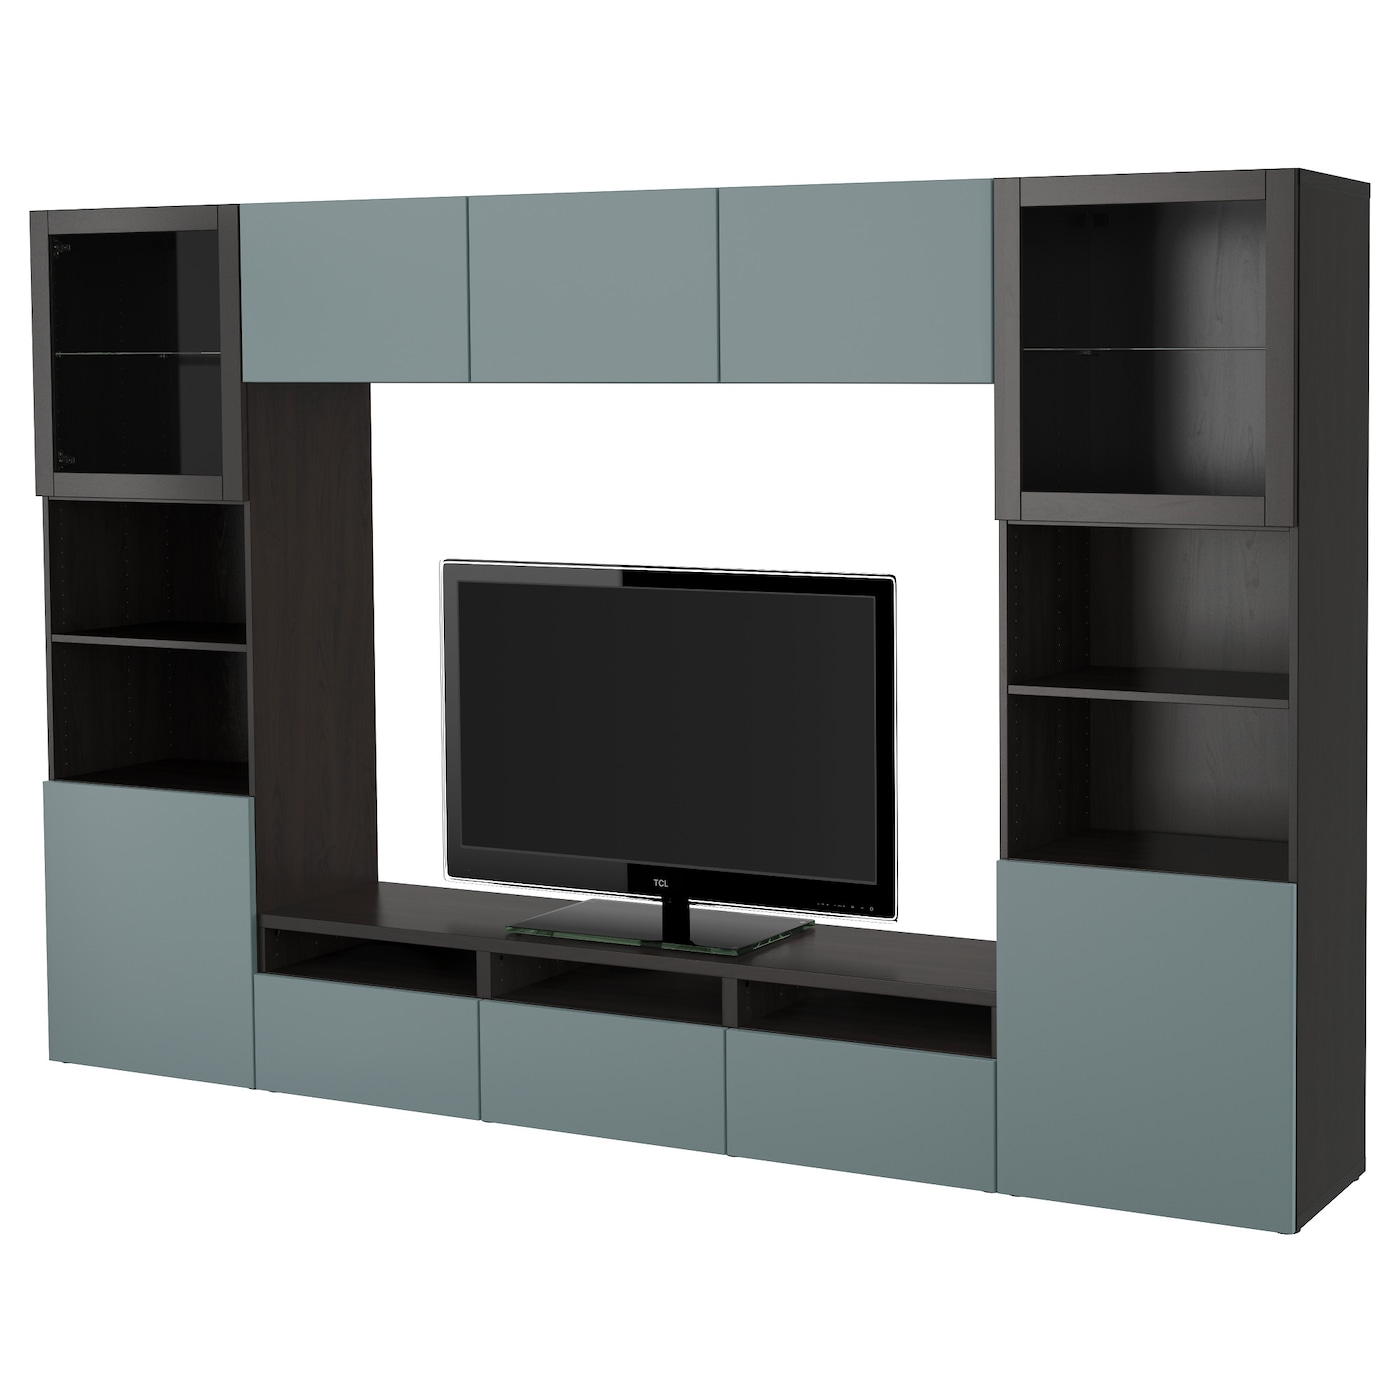 Best Tv Storage Combinationglass Doors Black Brownvalviken Grey